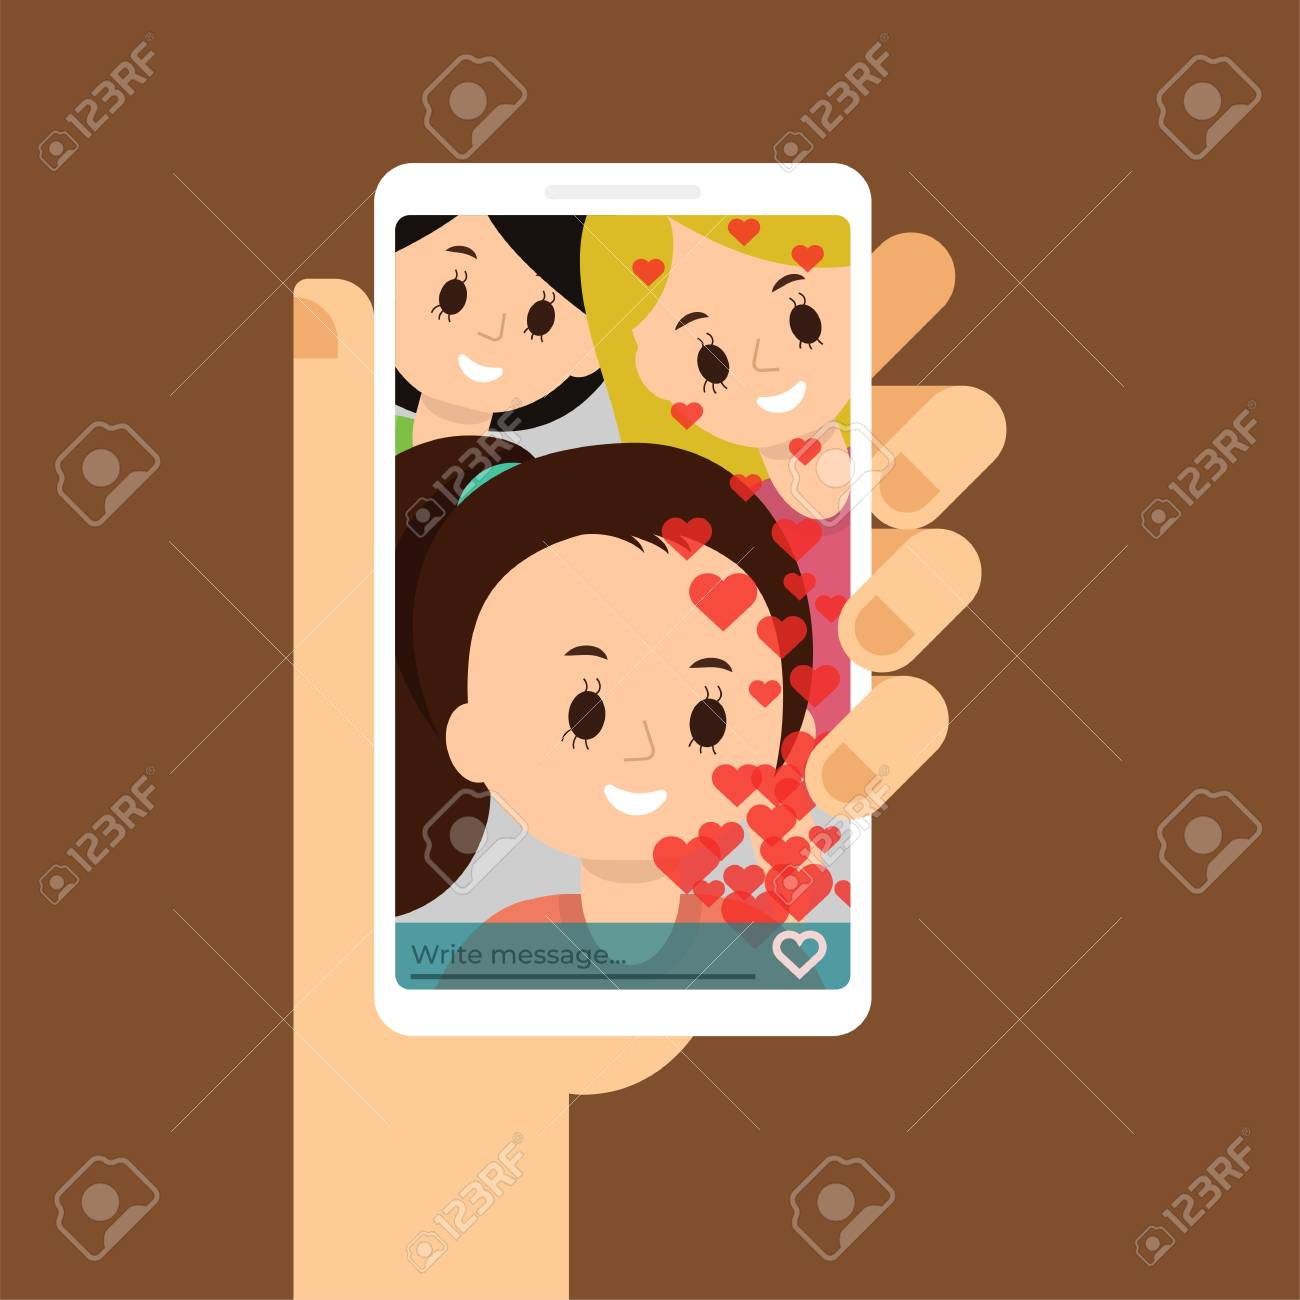 Flat illustration of video call with friends, family. Chatting with friends. Smartphone in the hand - 101728457